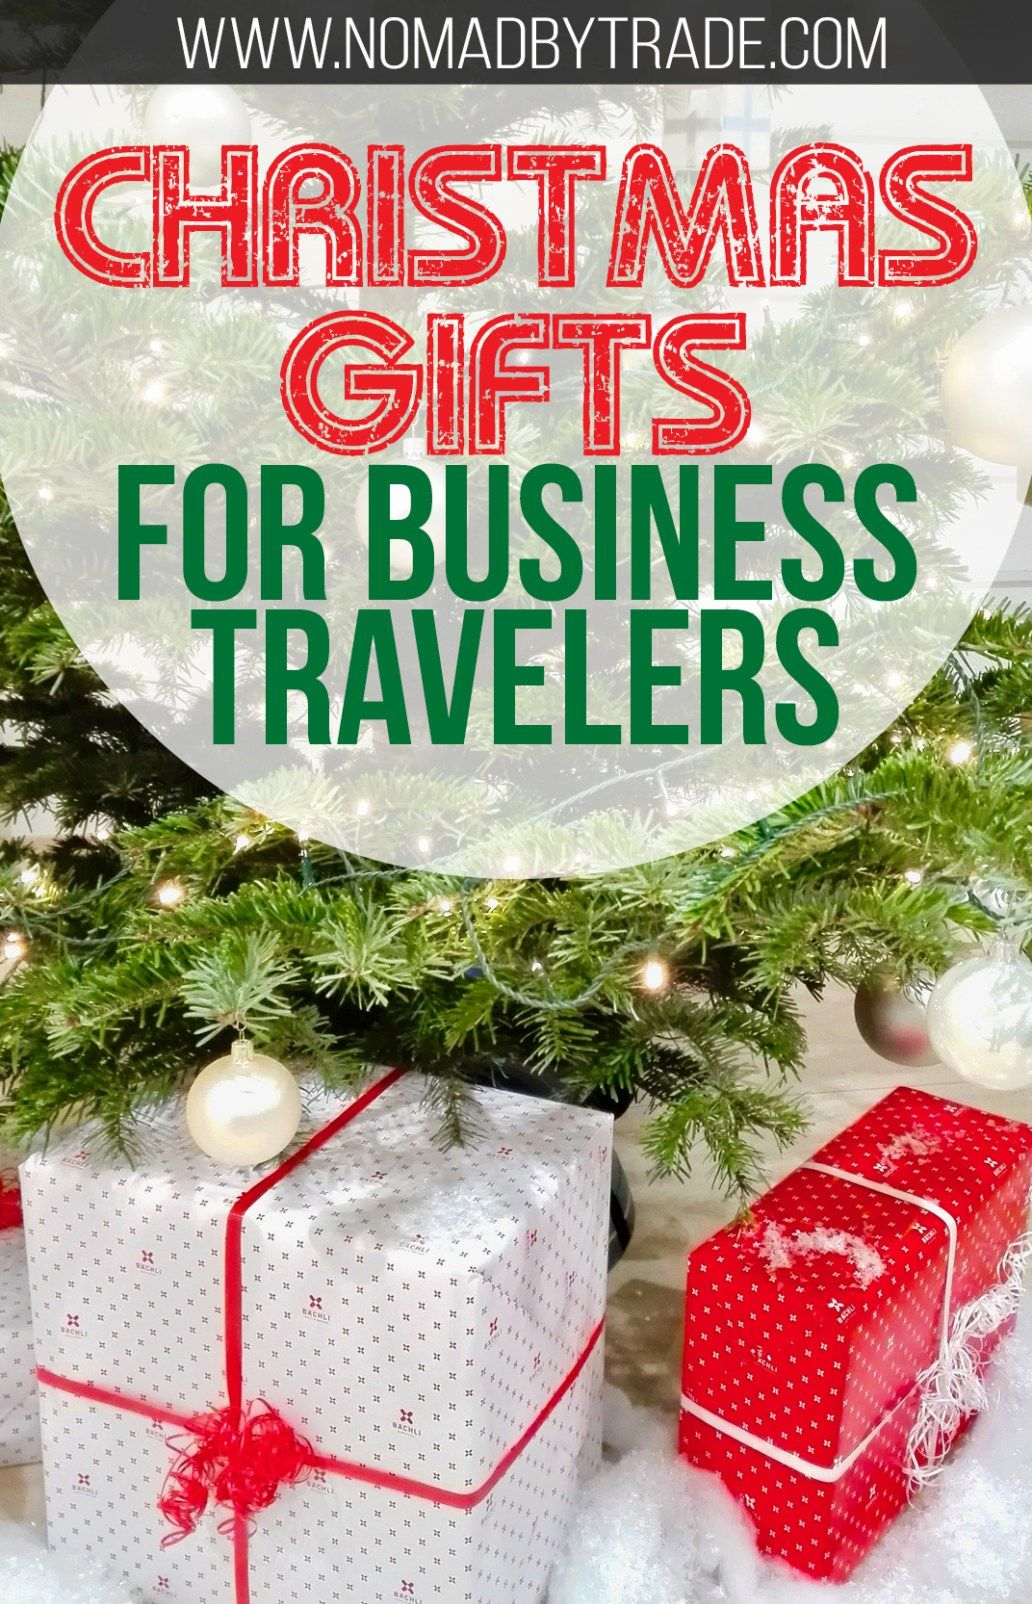 the best christmas gifts for business travelers are included in this detailed list of carry on suitcase clothing and other ideas from a veteran business